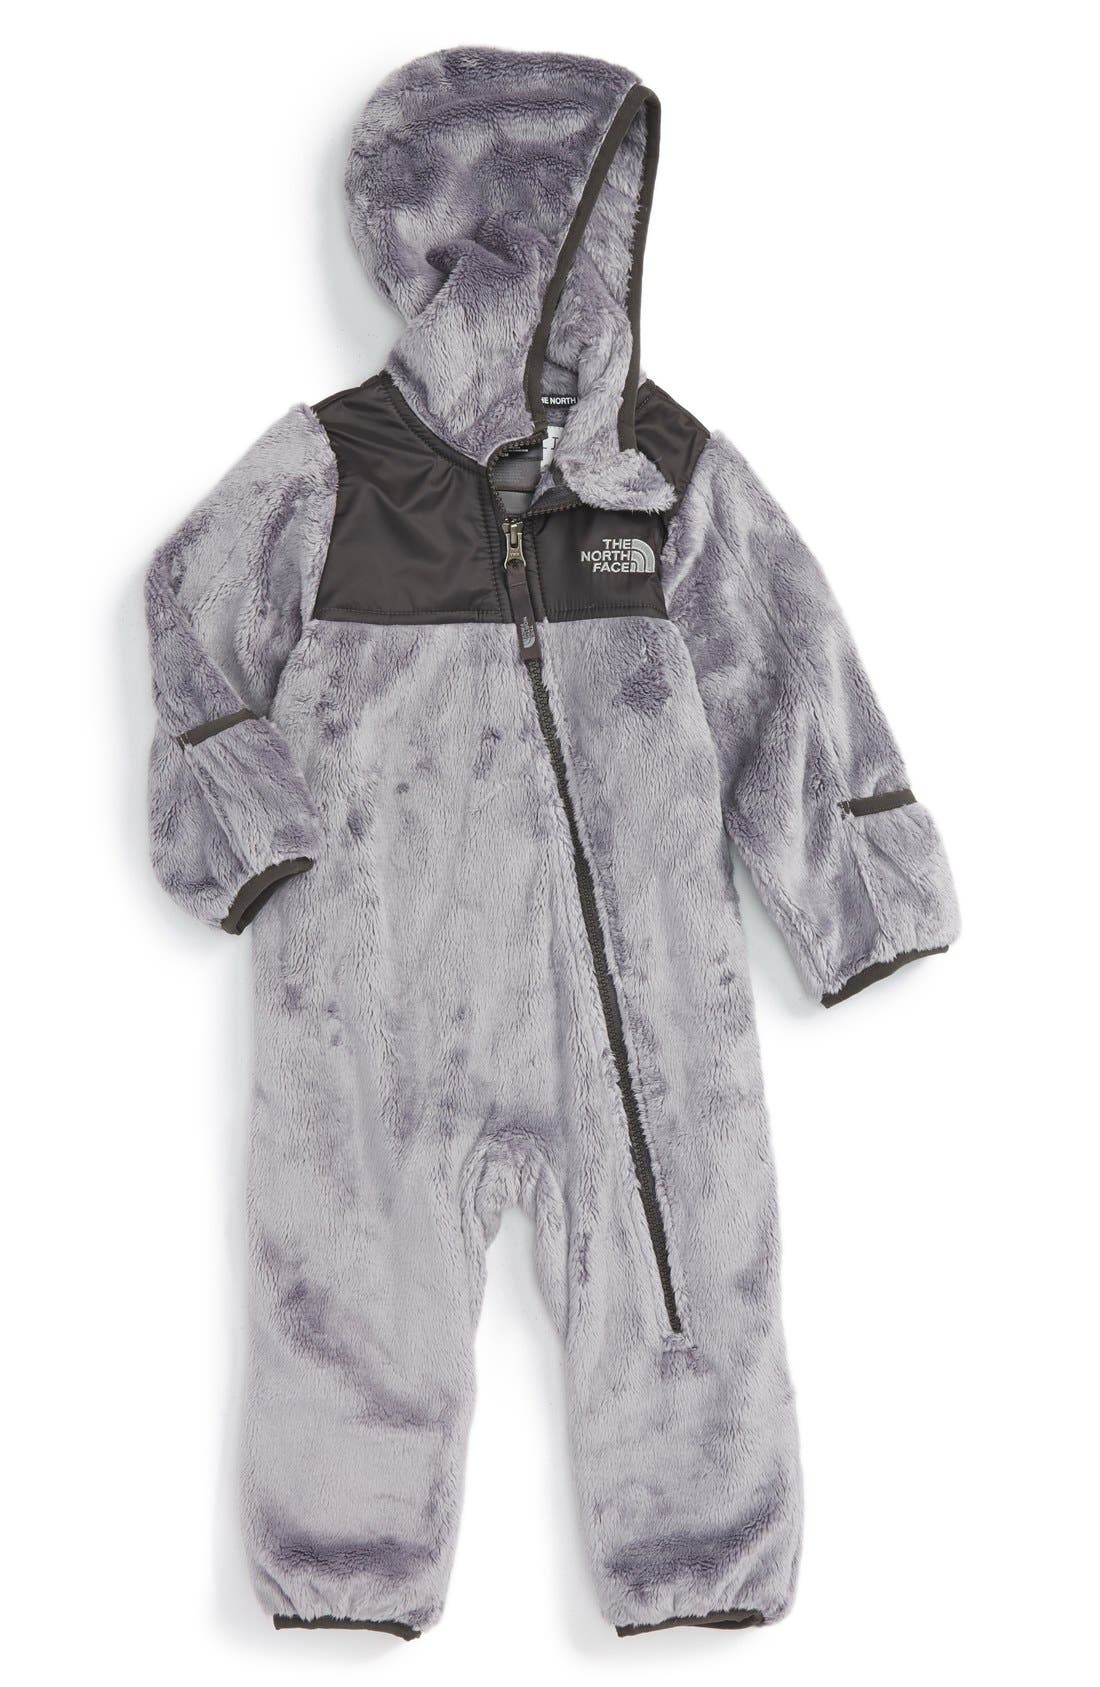 THE NORTH FACE, Oso Hooded Fleece Romper, Main thumbnail 1, color, 021